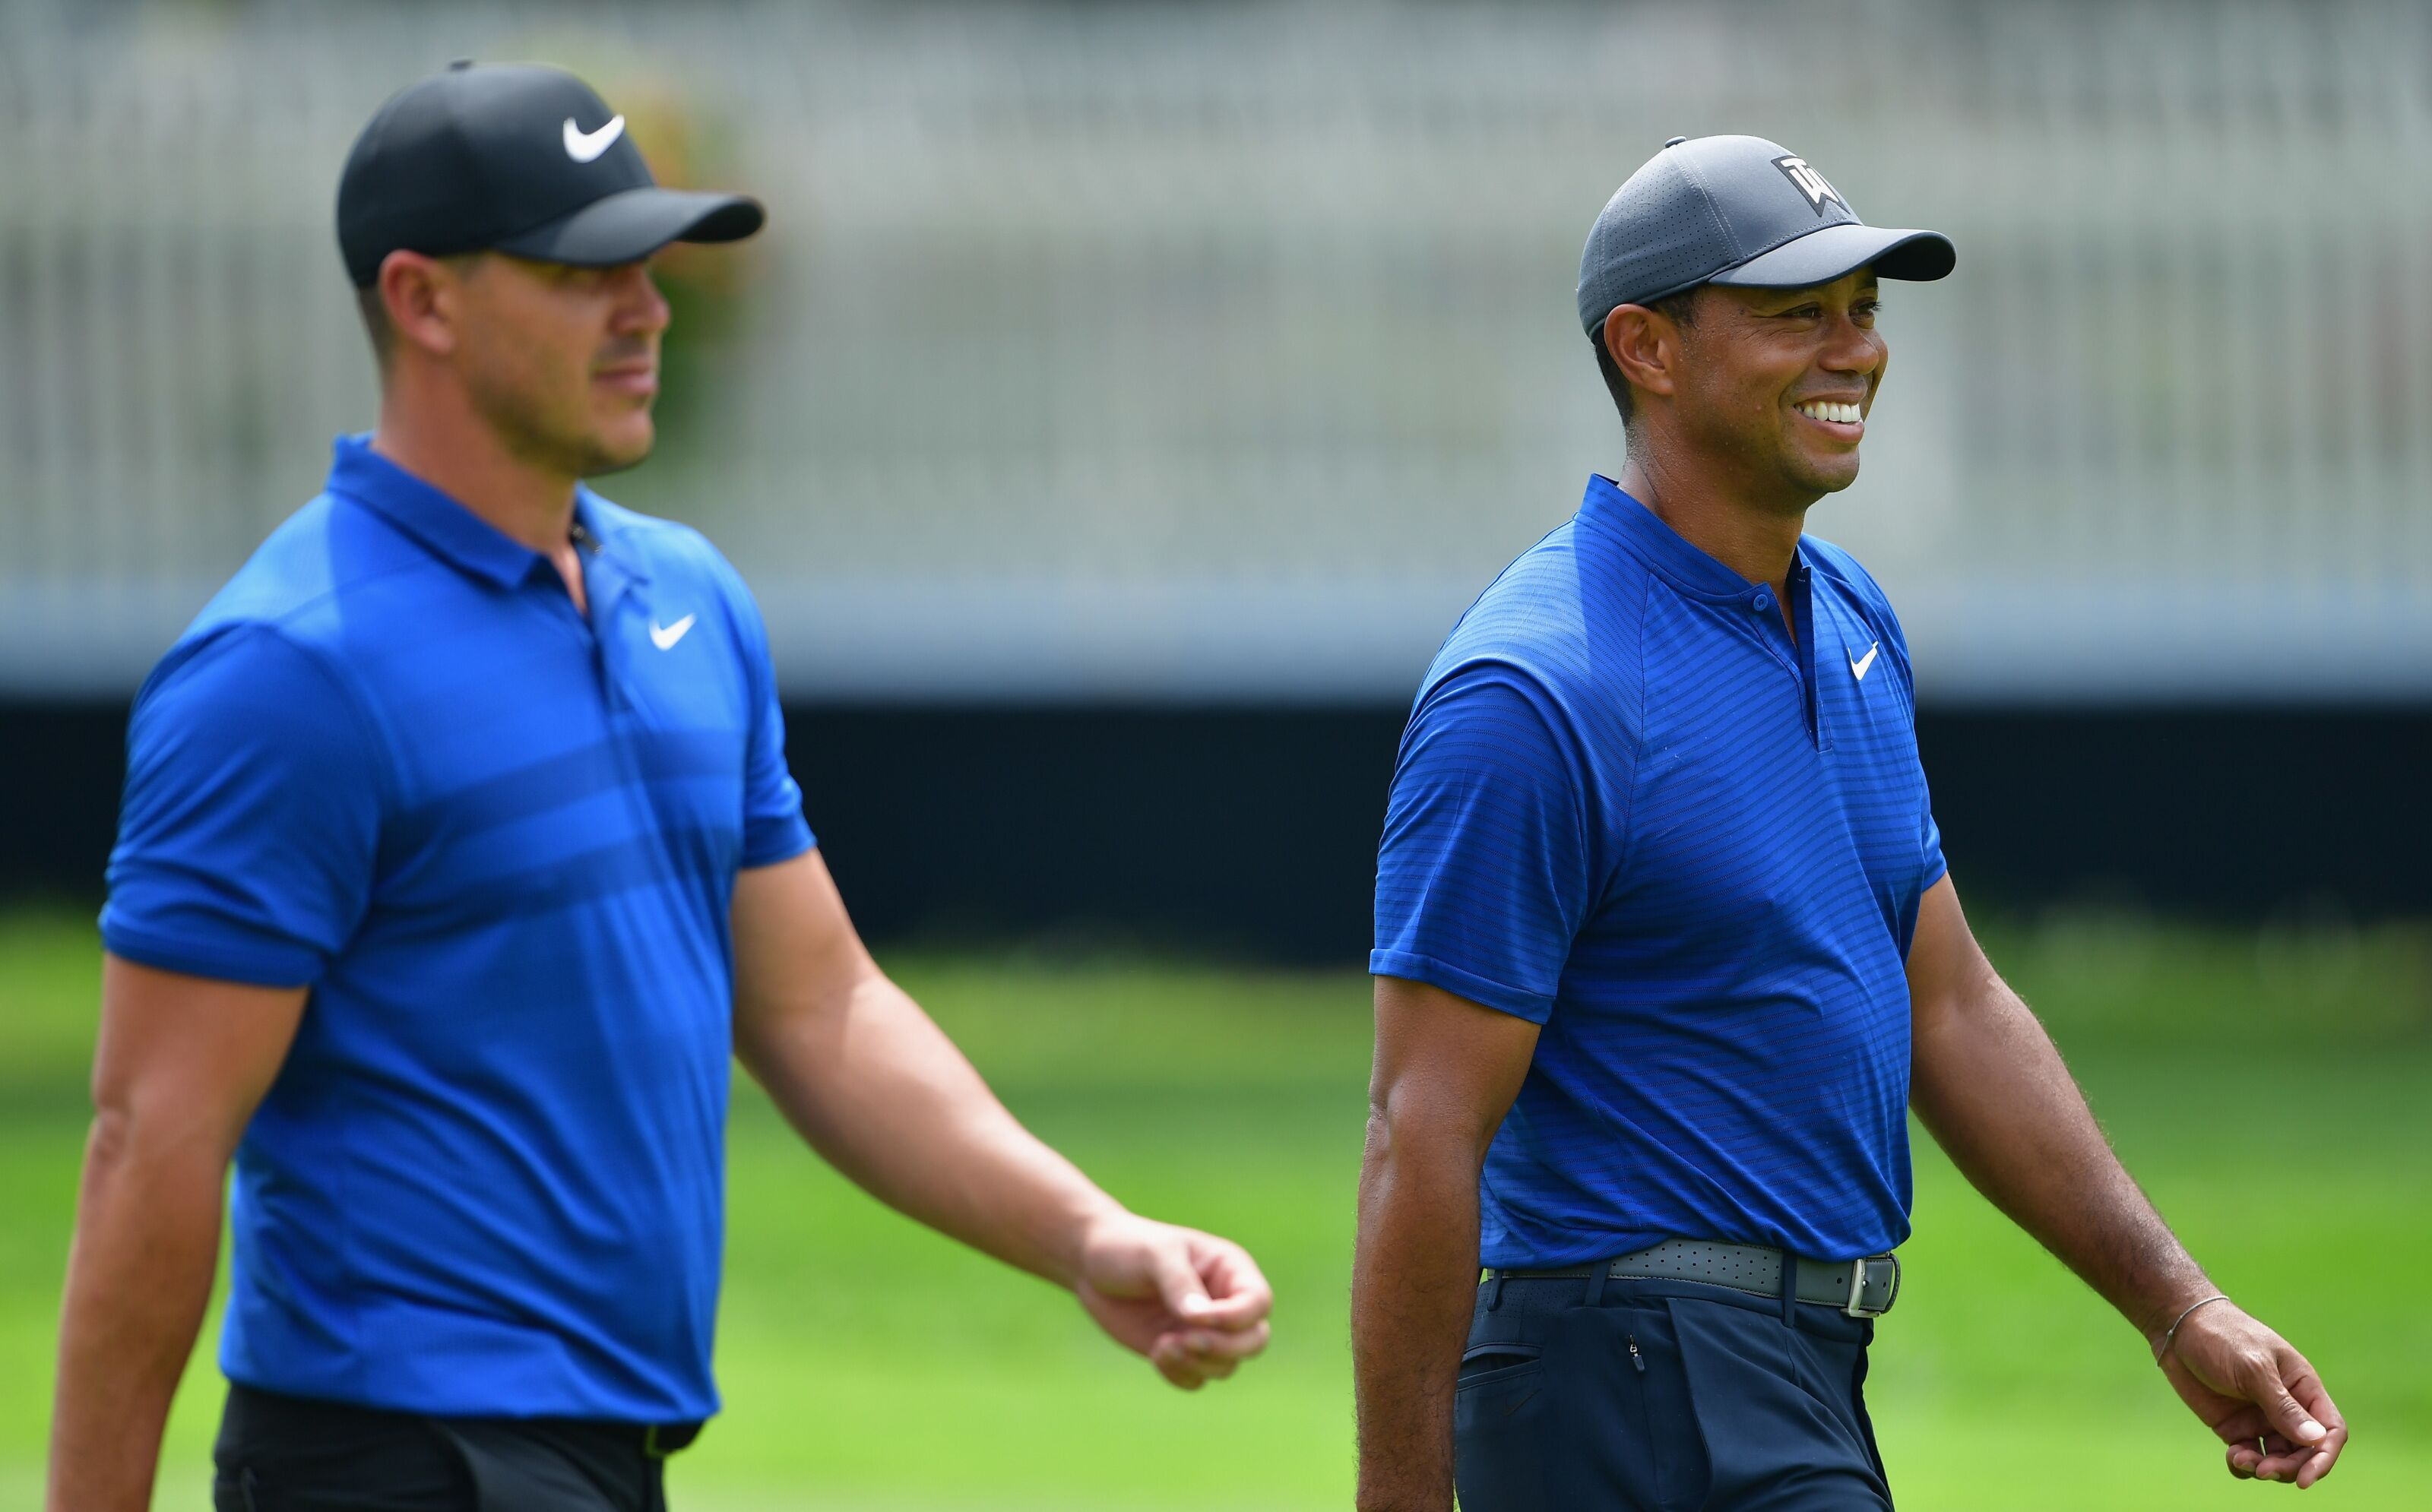 ST LOUIS, MO - AUGUST 08: Brooks Koepka and Tiger Woods of the United States walk together during a practice round prior to the 2018 PGA Championship at Bellerive Country Club on August 8, 2018 in St Louis, Missouri. (Photo by Stuart Franklin/Getty Images)